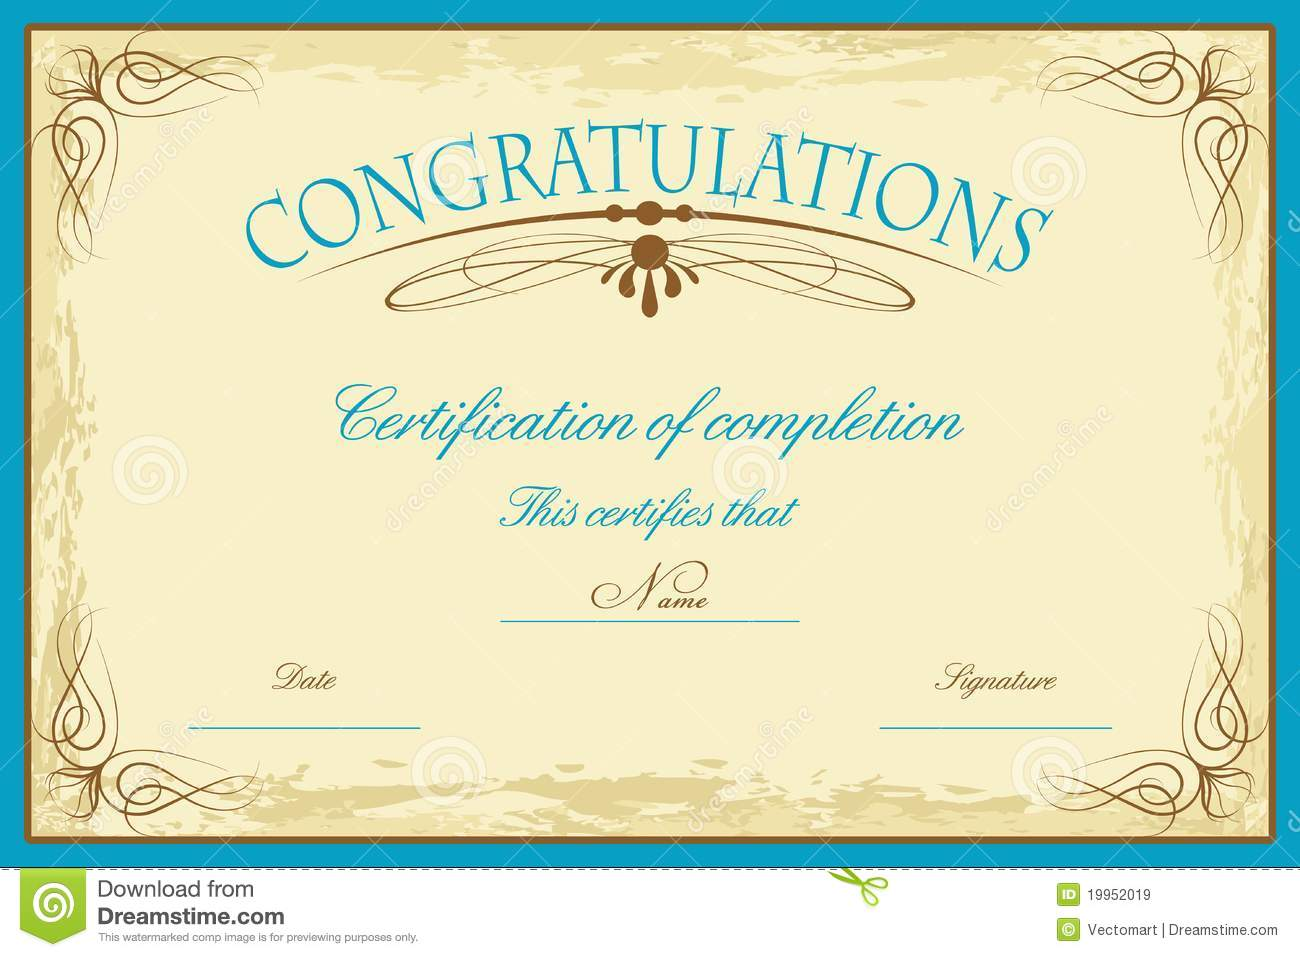 Certificate templates rich image and wallpaper for Certificate of completion template free download